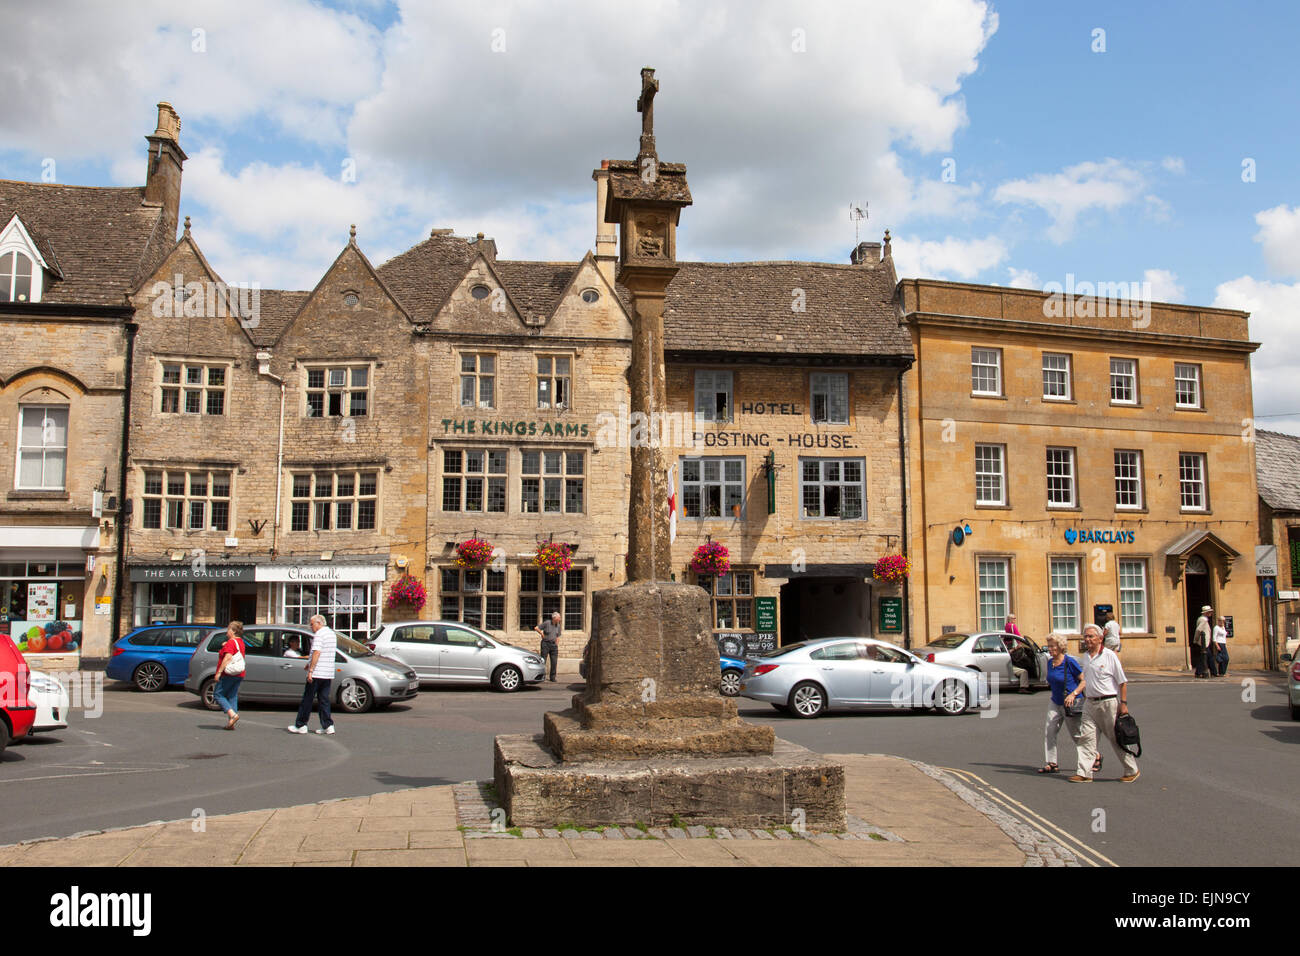 The Market Square & Cross, Stow-on-the-Wold, The Cotswolds, Gloucestershire, England, U.K. - Stock Image